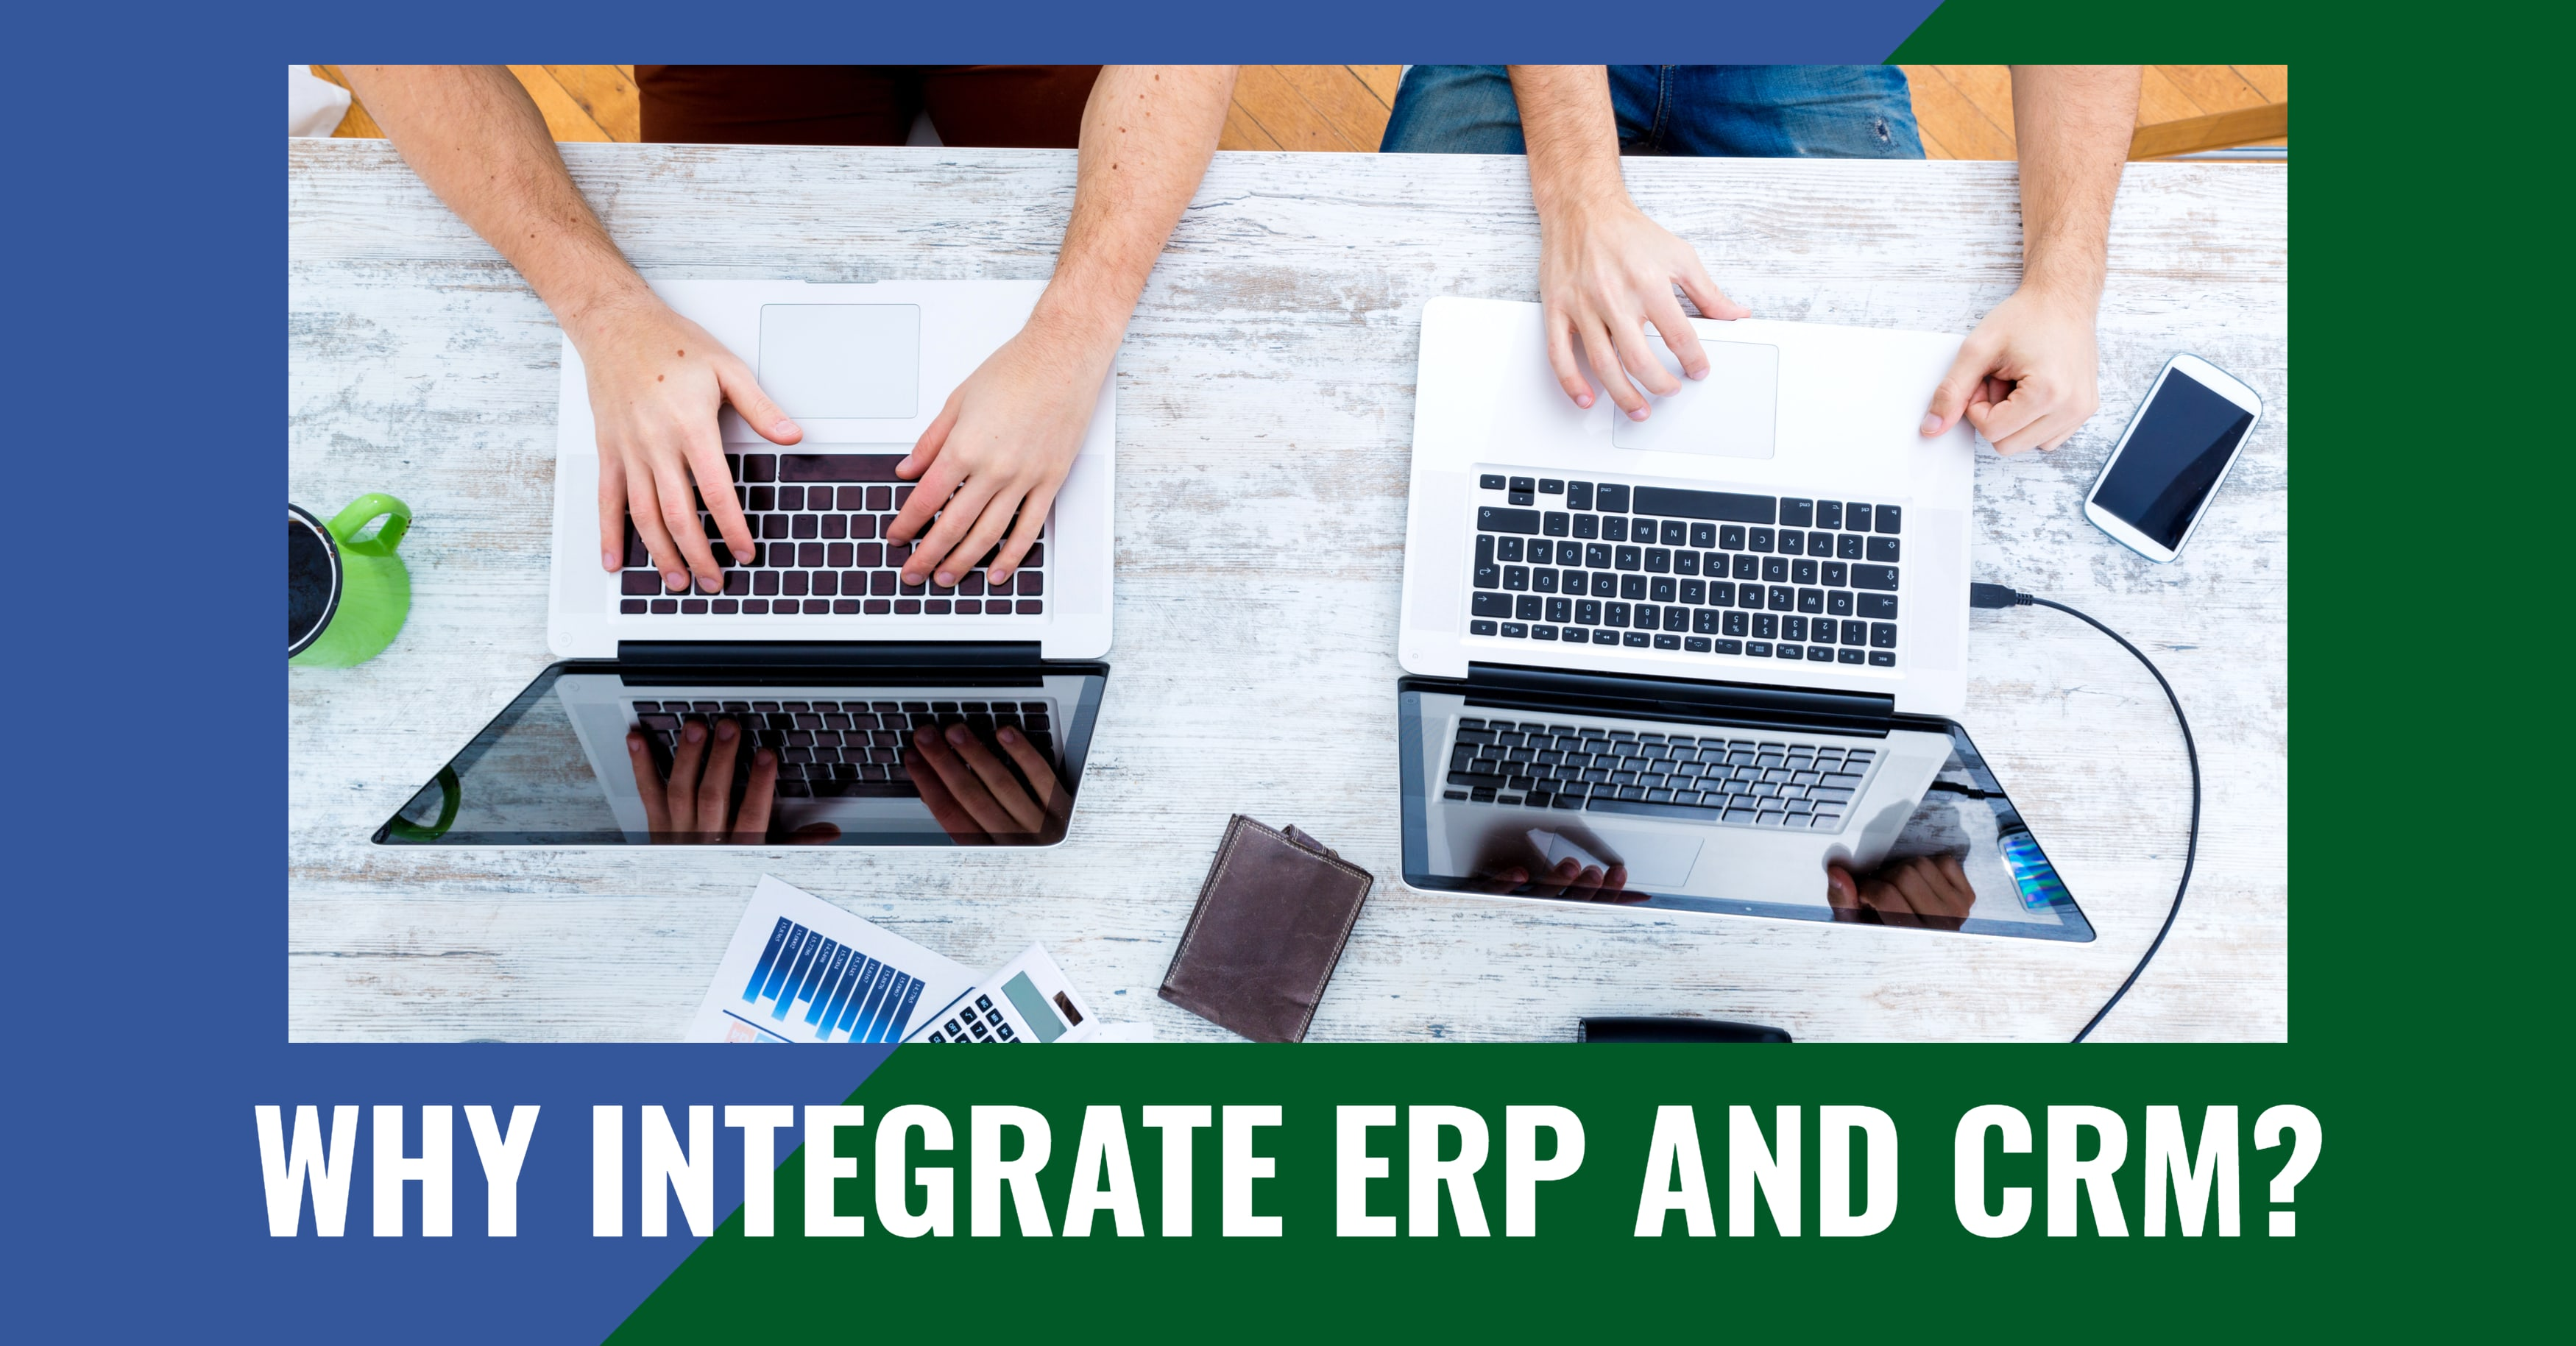 Why Integrate ERP and CRM?